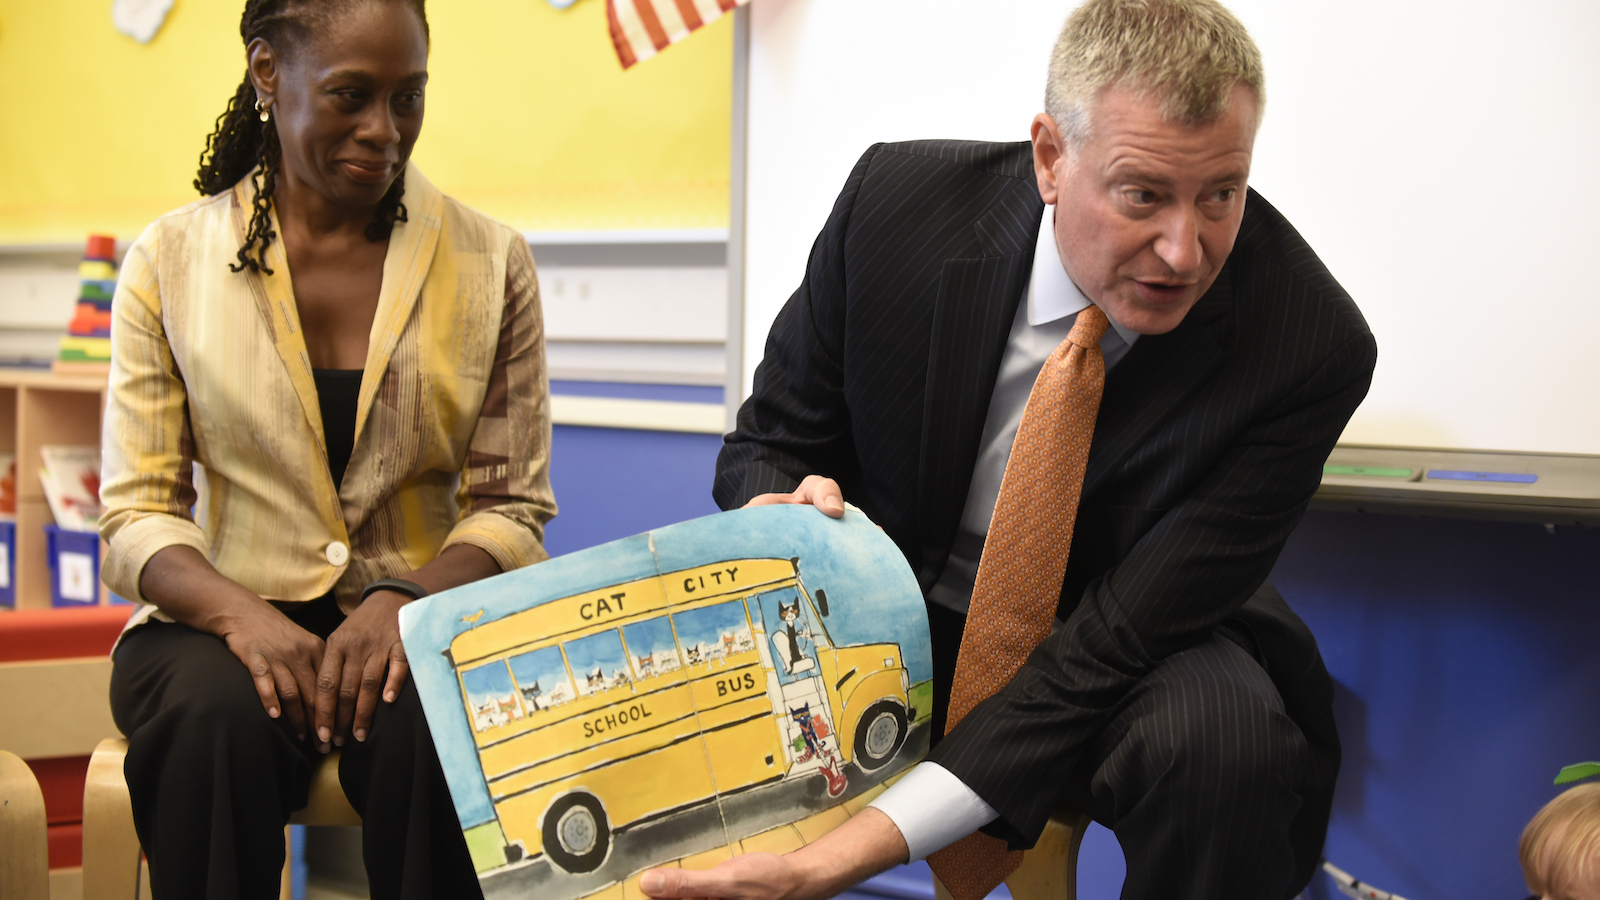 New York City Mayor Bill de Blasio (R) reads a book to pre-K students on their first day of school at Public School 59 in Staten Island, New York, September 9, 2015.  At left is First Lady Chirlane McCray.  REUTERS/Barry Williams/Pool - RTSBSU